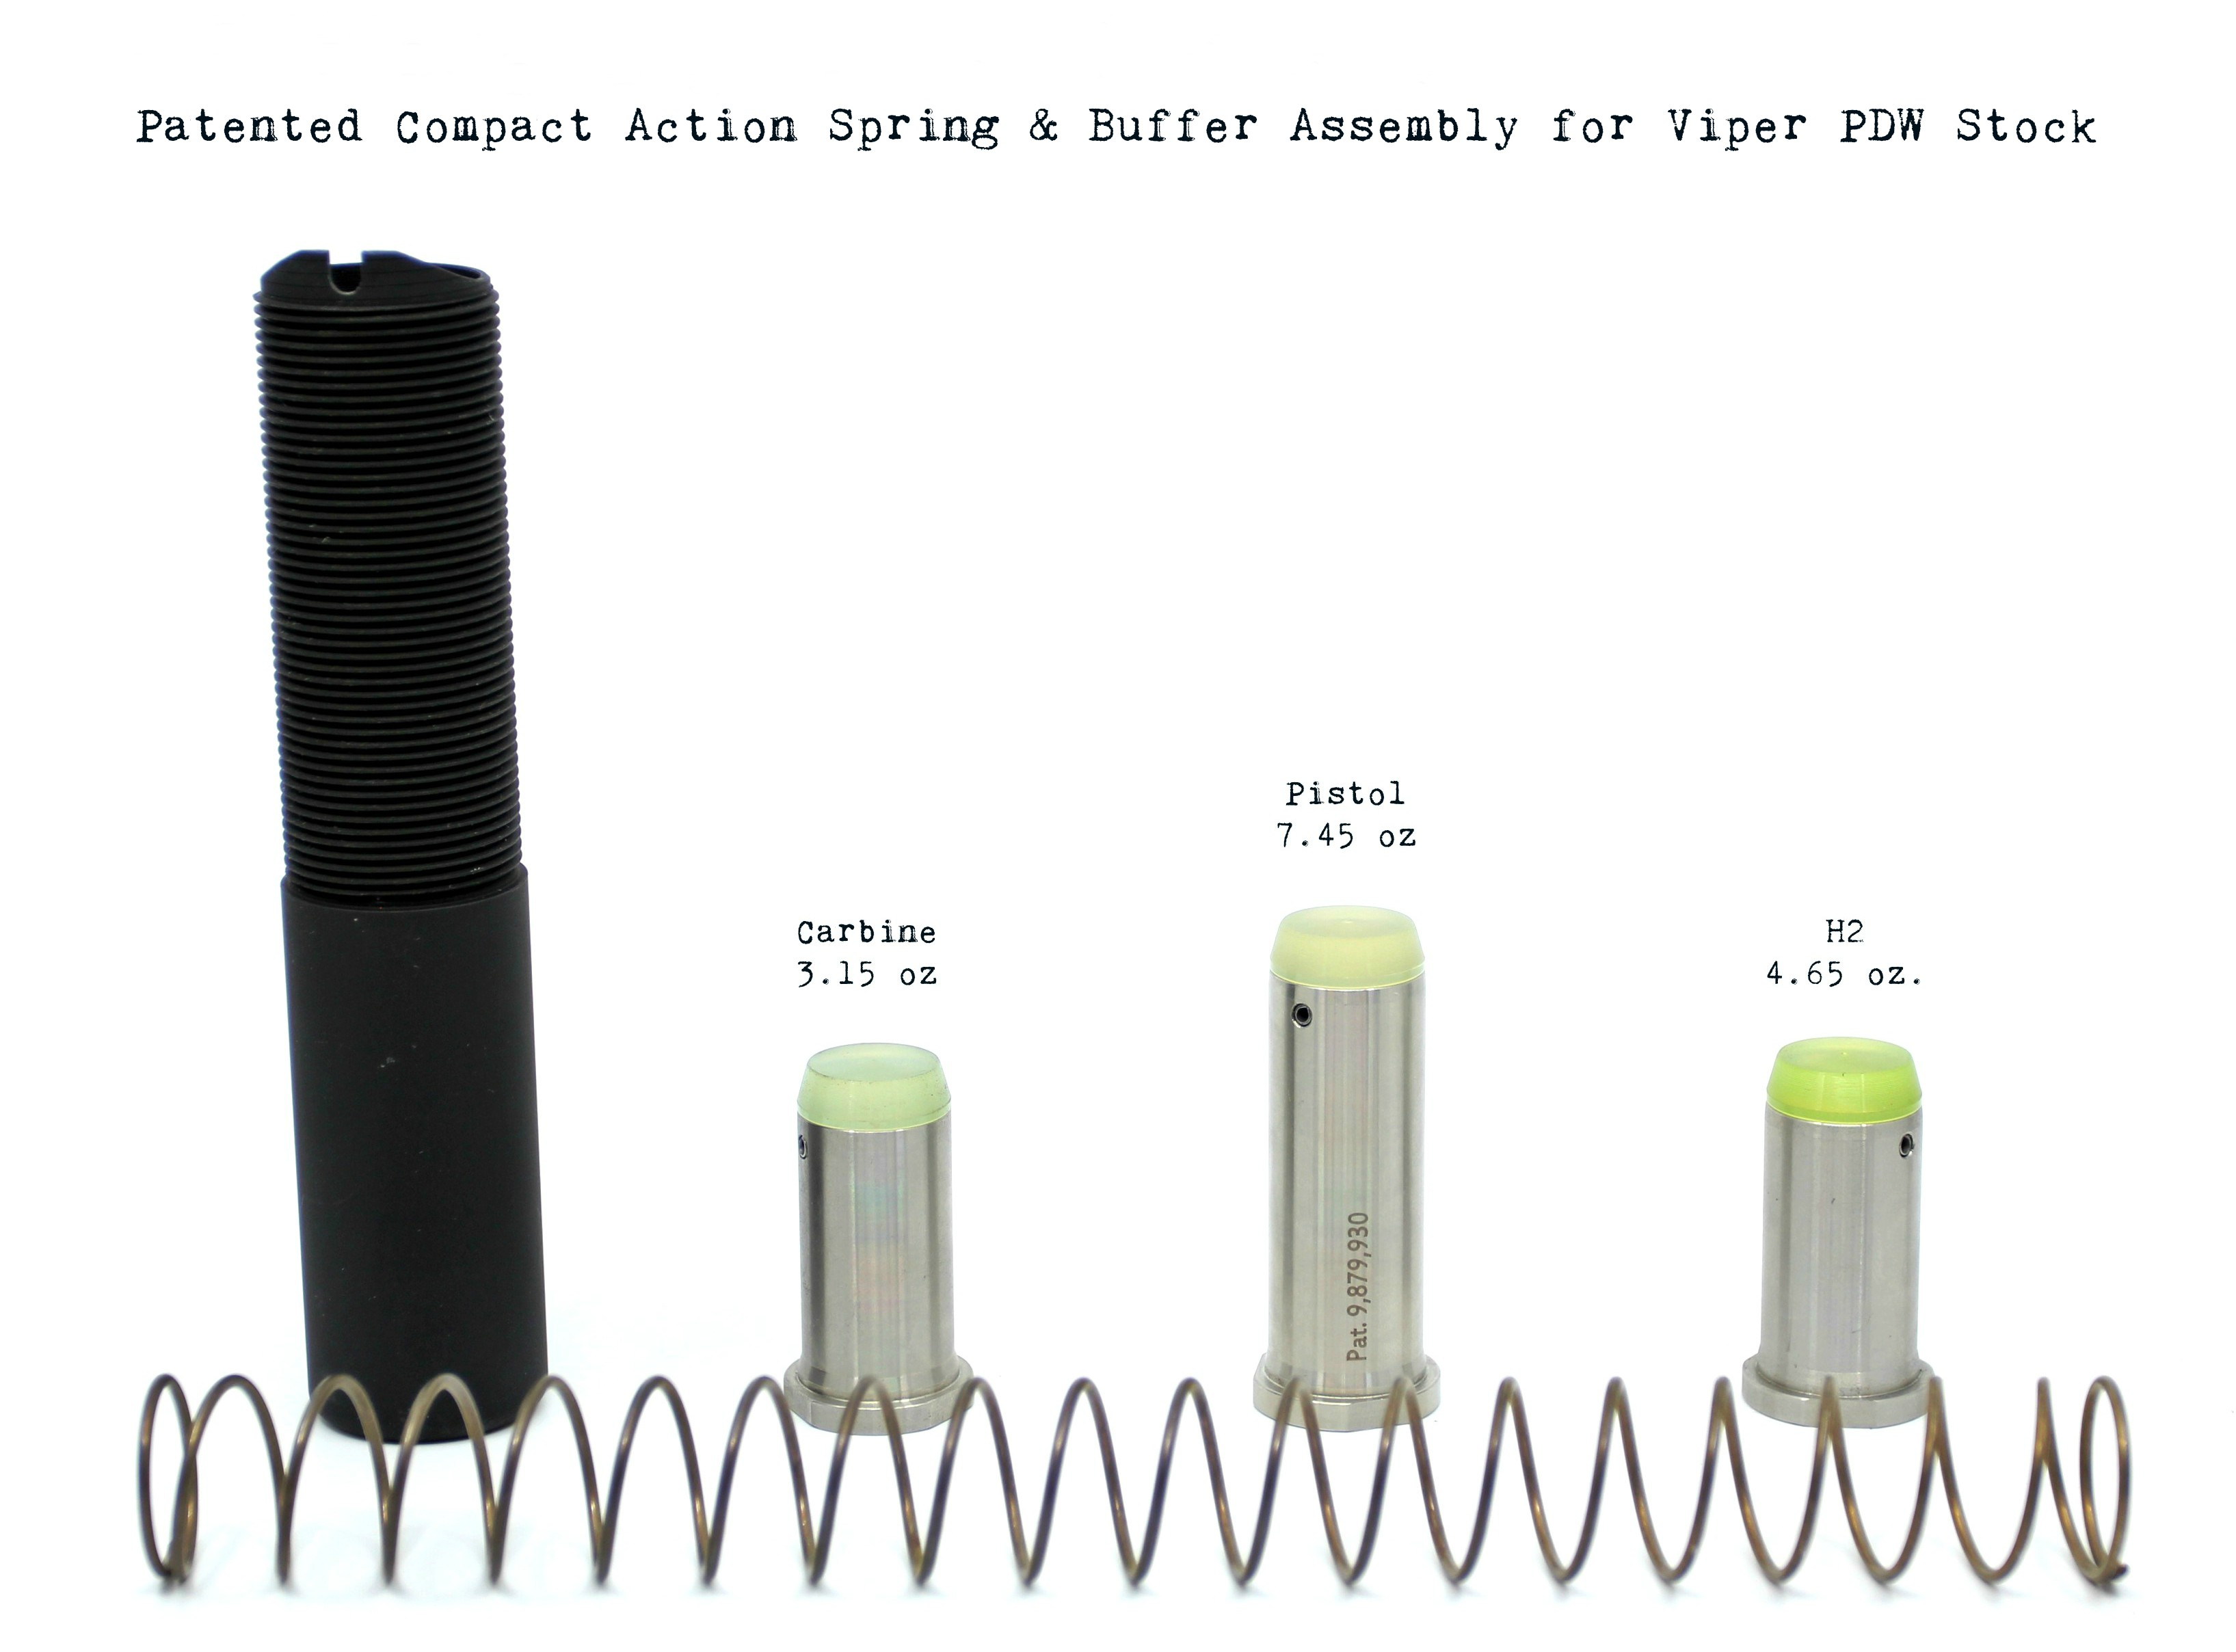 Enhanced Spring & Buffer Tube Assemblies for Viper PDW Stocks & Braces